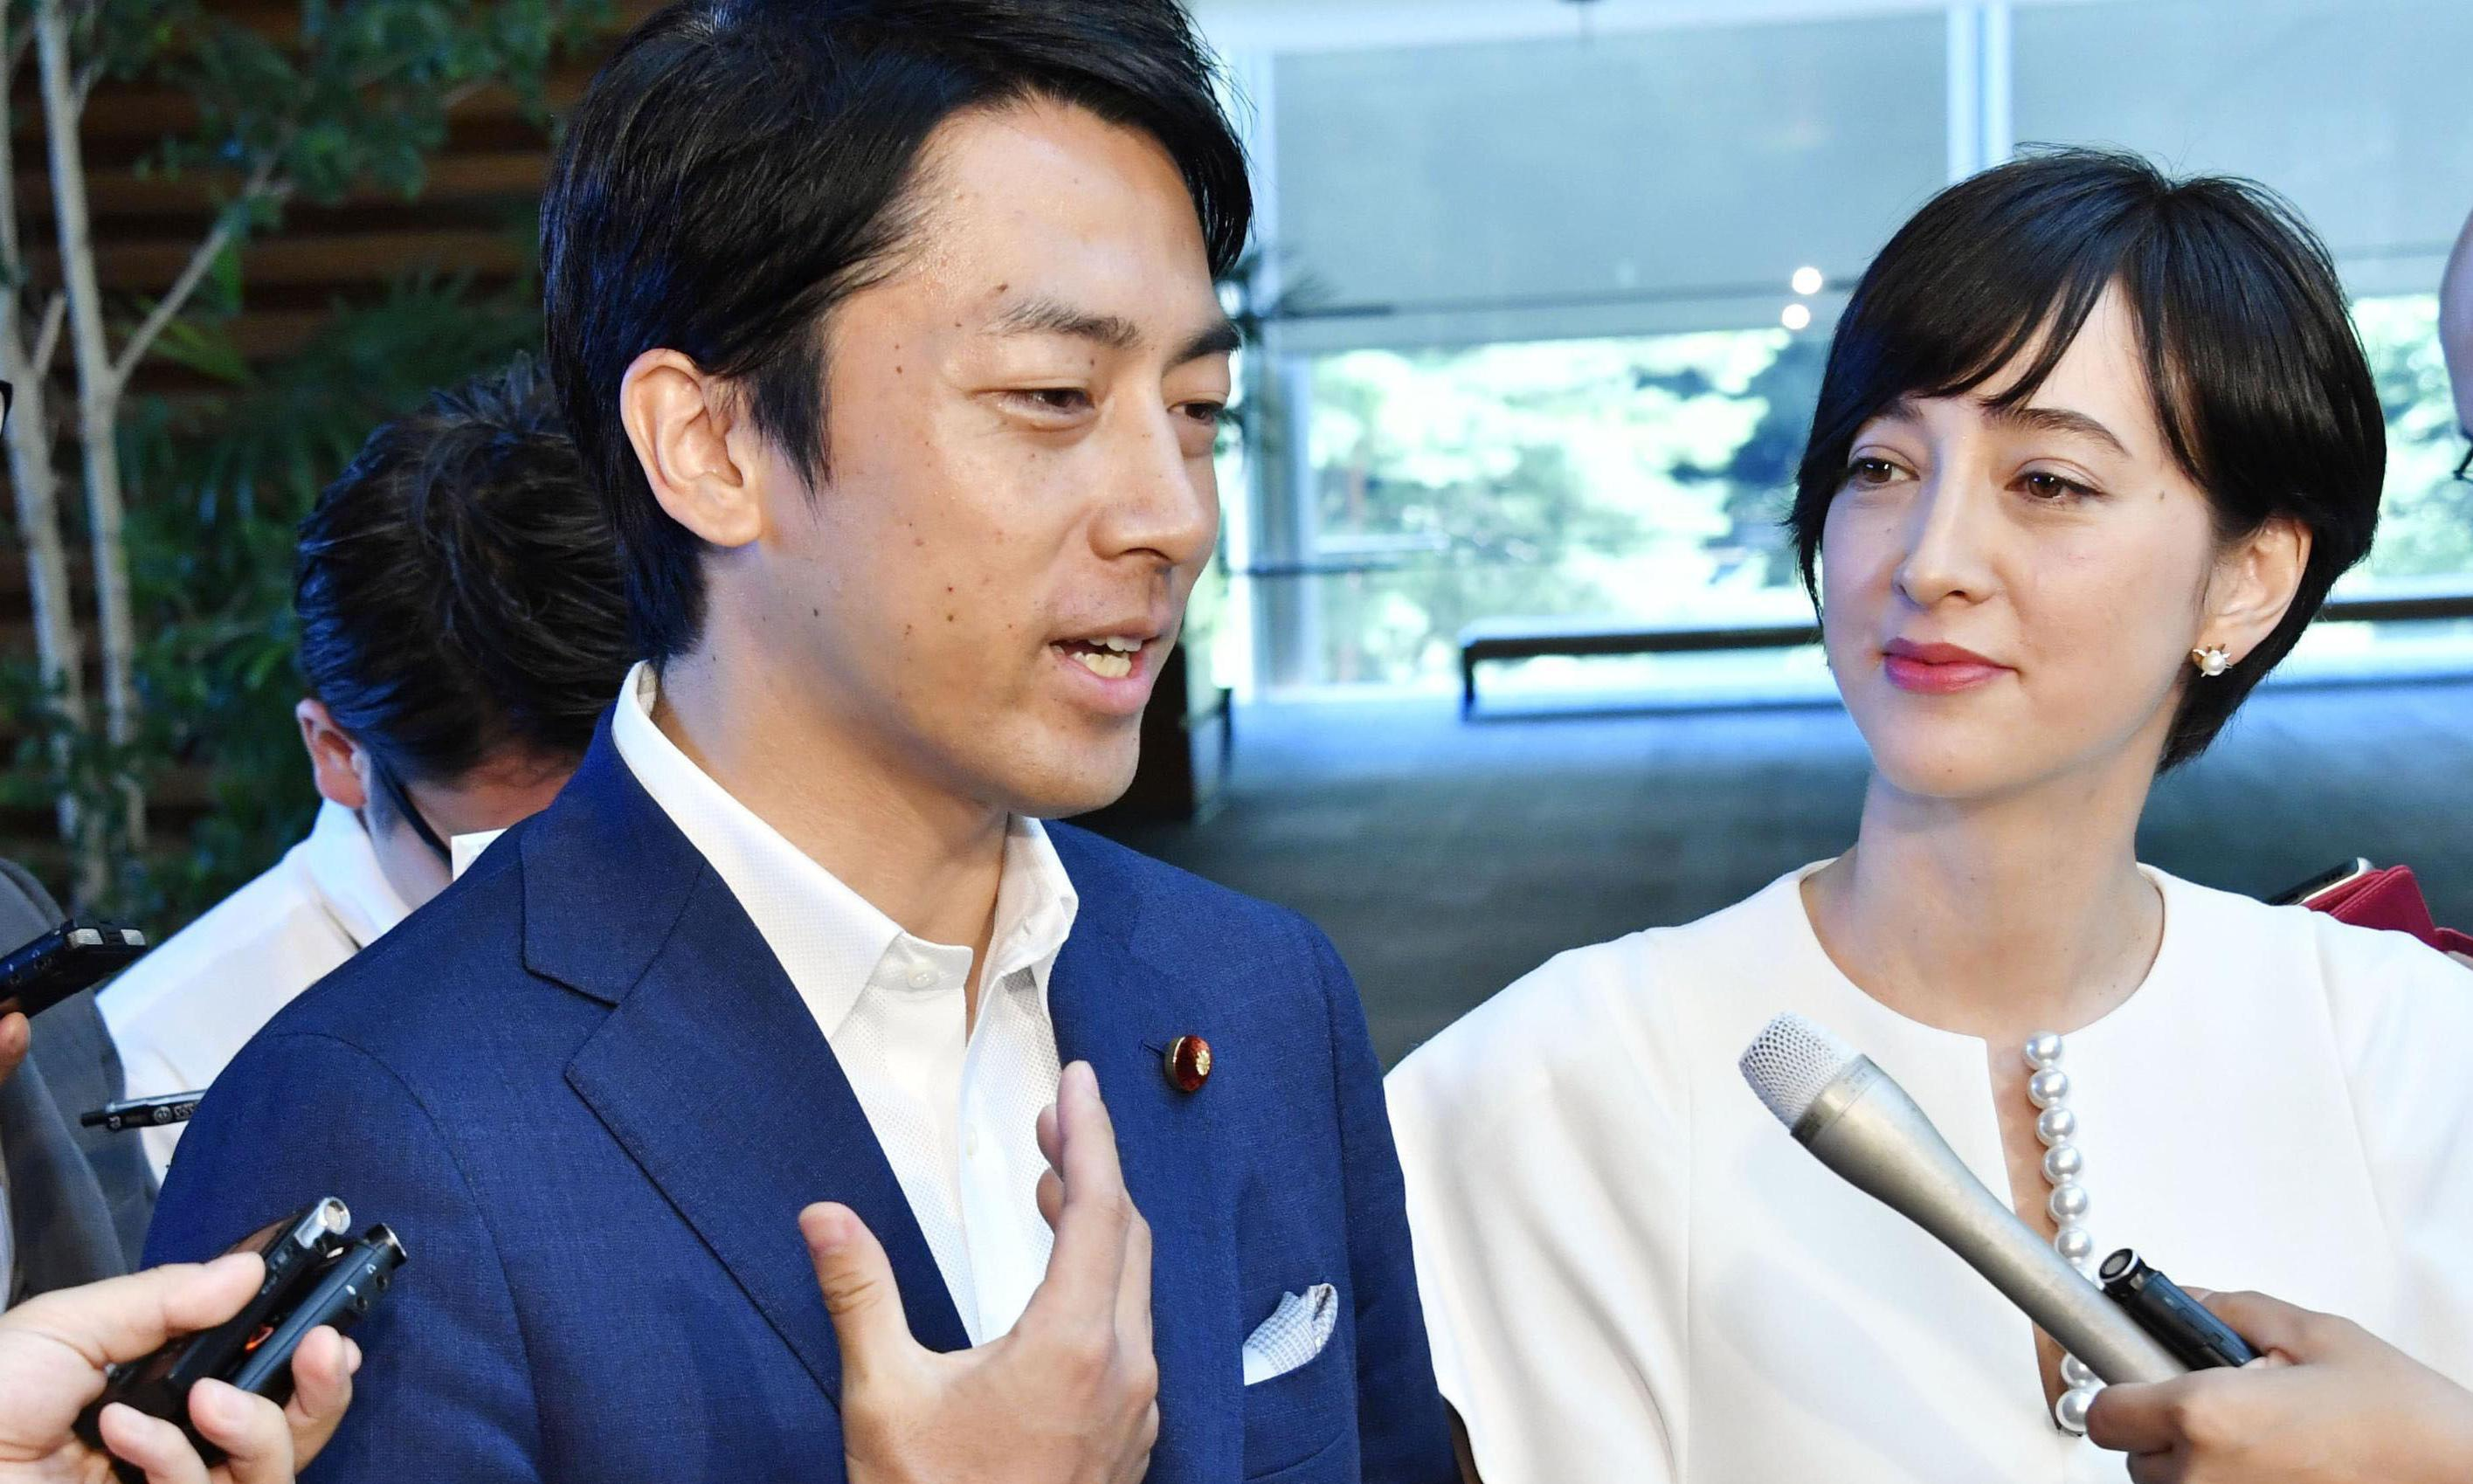 Culture shock: can trailblazing Japanese minister change minds on paternity leave?